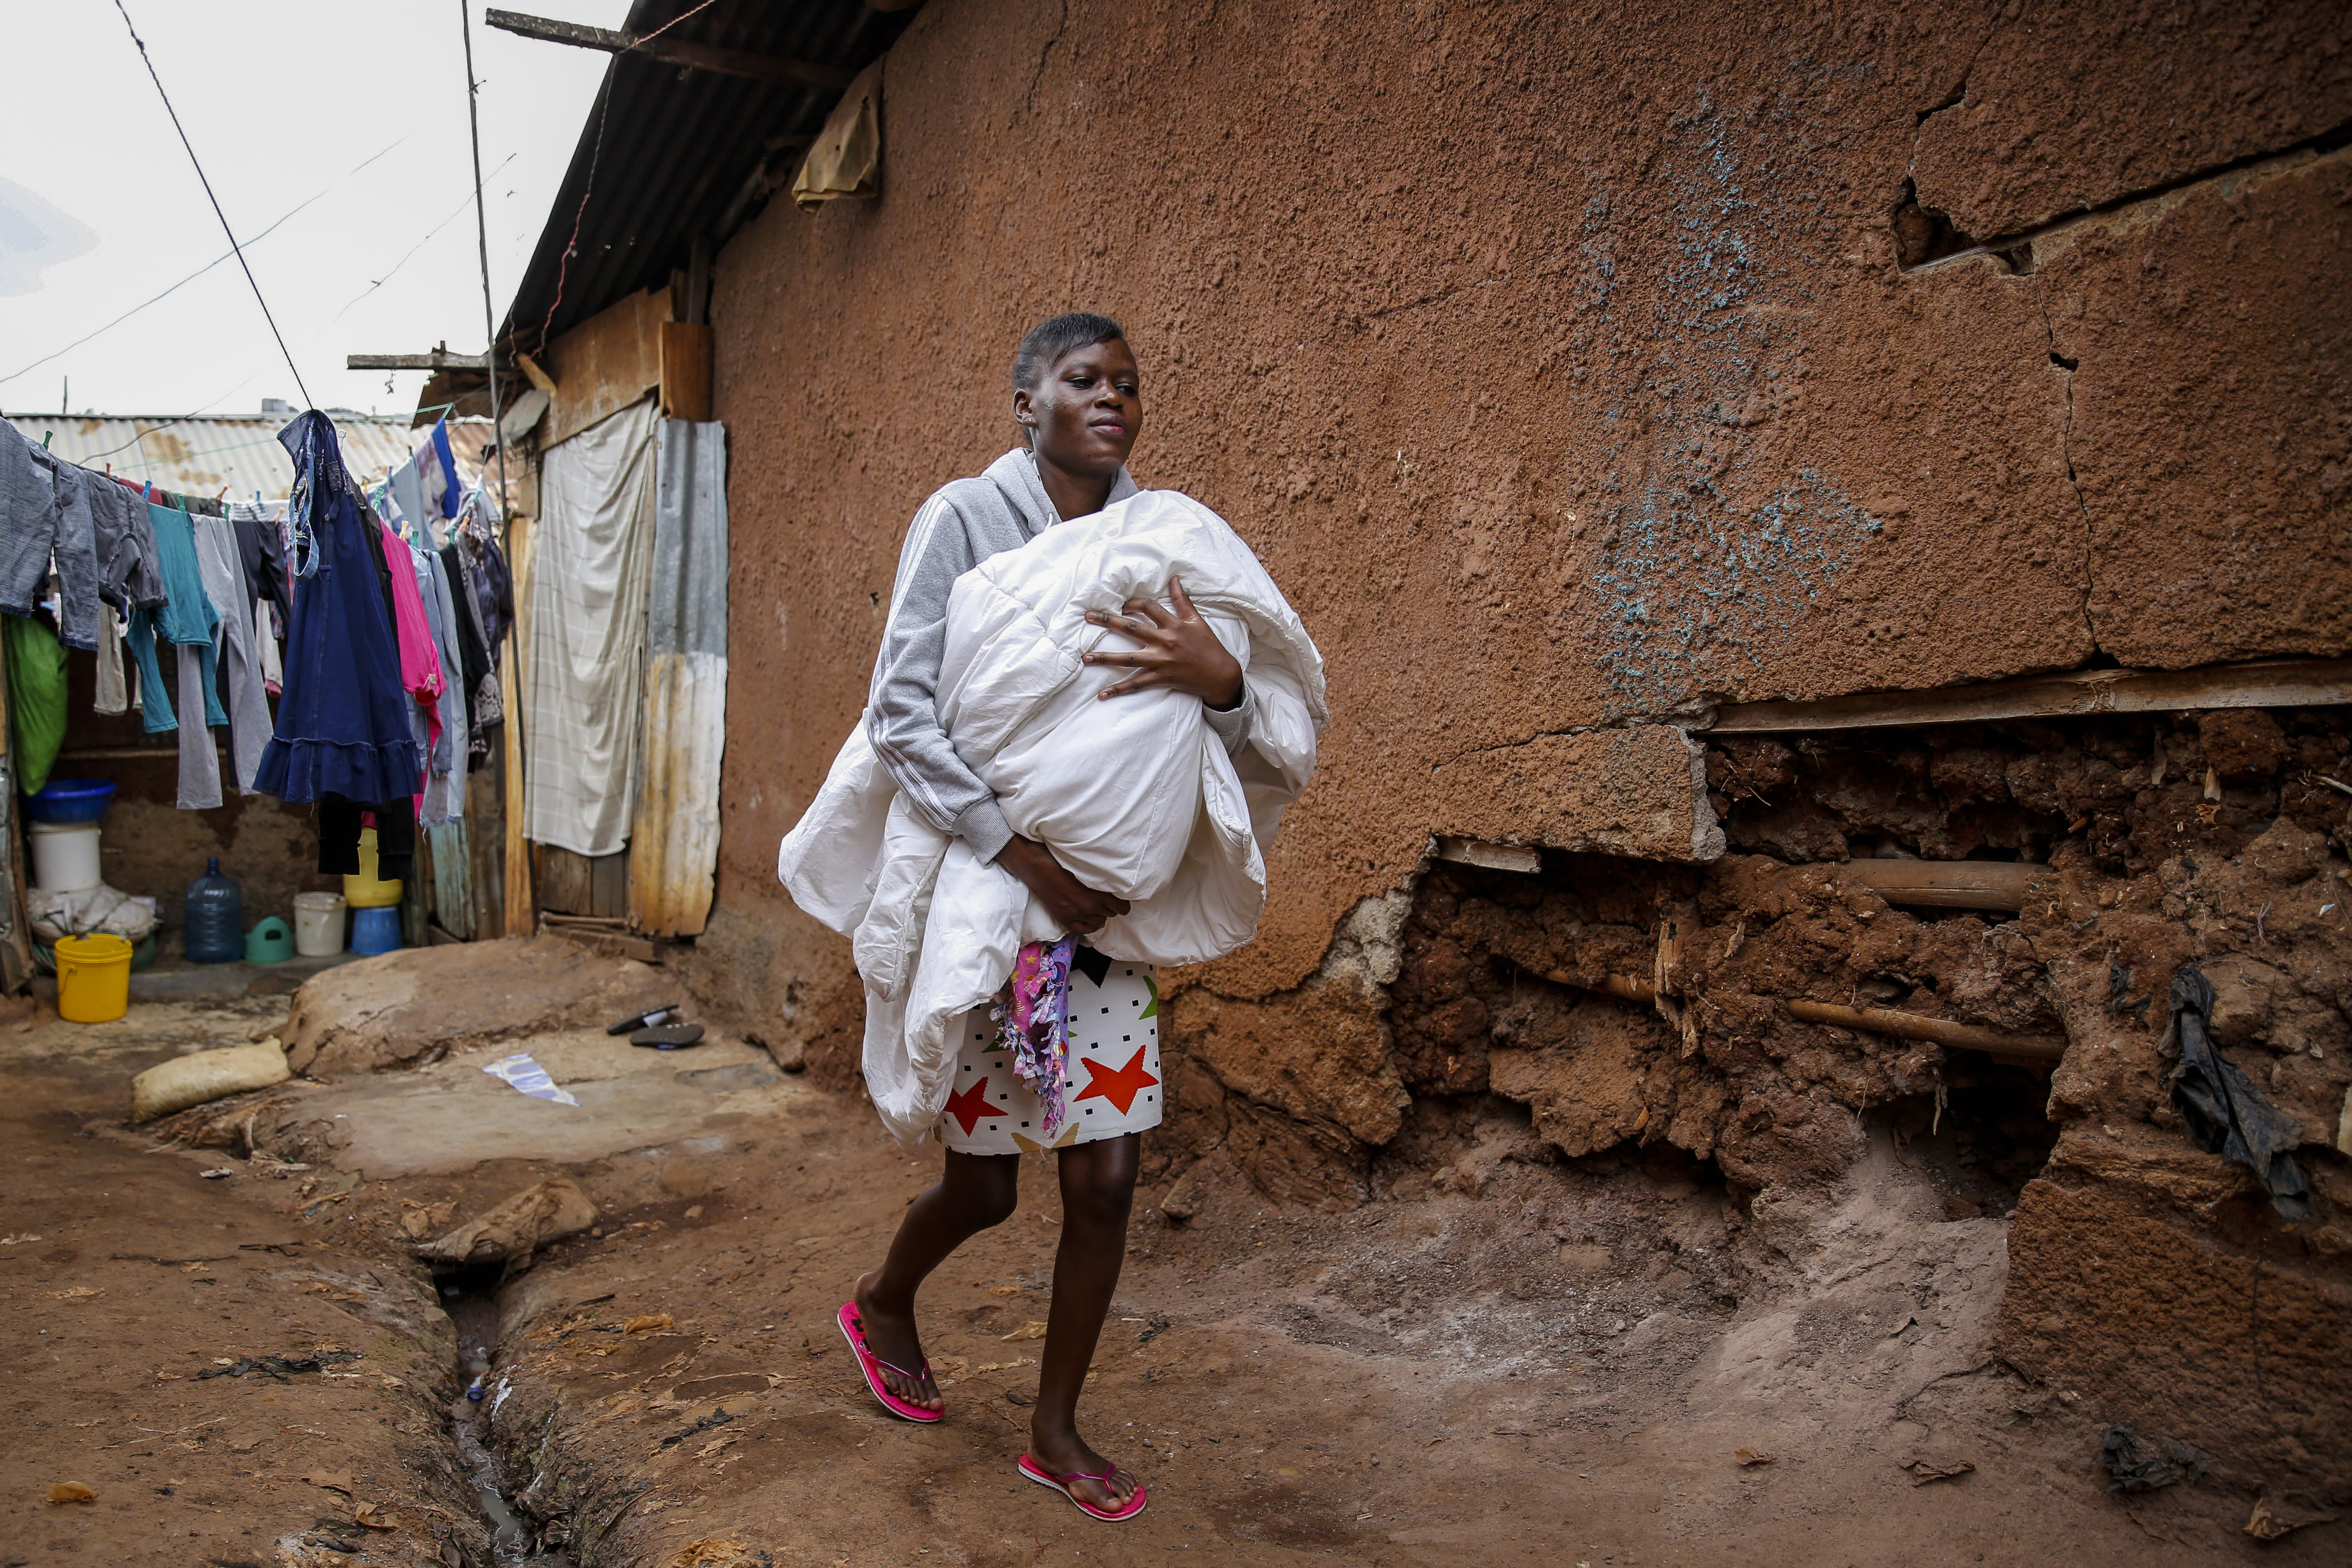 Veronica Atieno carries her daughter Shaniz Joy Juma, delivered a month earlier by a traditional birth attendant during a dusk-to-dawn curfew, in the Kibera slum of Nairobi, Kenya, Friday, July 3, 2020. Kenya already had one of the worst maternal mortality rates in the world, and though data are not yet available on the effects of the curfew aimed at curbing the spread of the coronavirus, experts believe the number of women and babies who die in childbirth has increased significantly since it was imposed mid-March. (AP Photo/Brian Inganga)